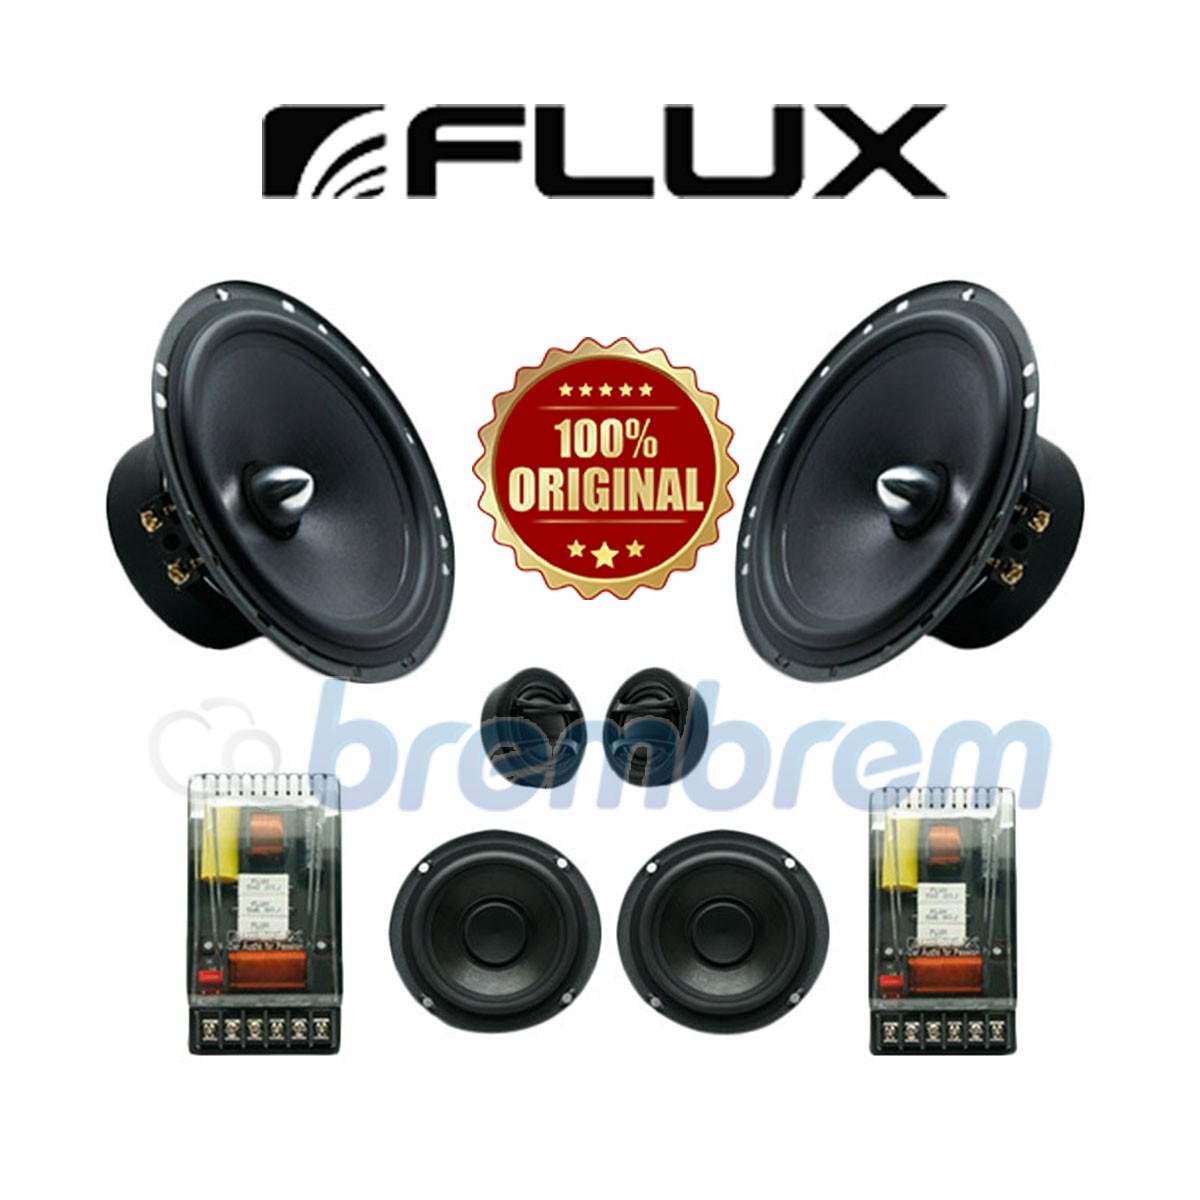 FLUX SC 361 - SPEAKER 3 WAY